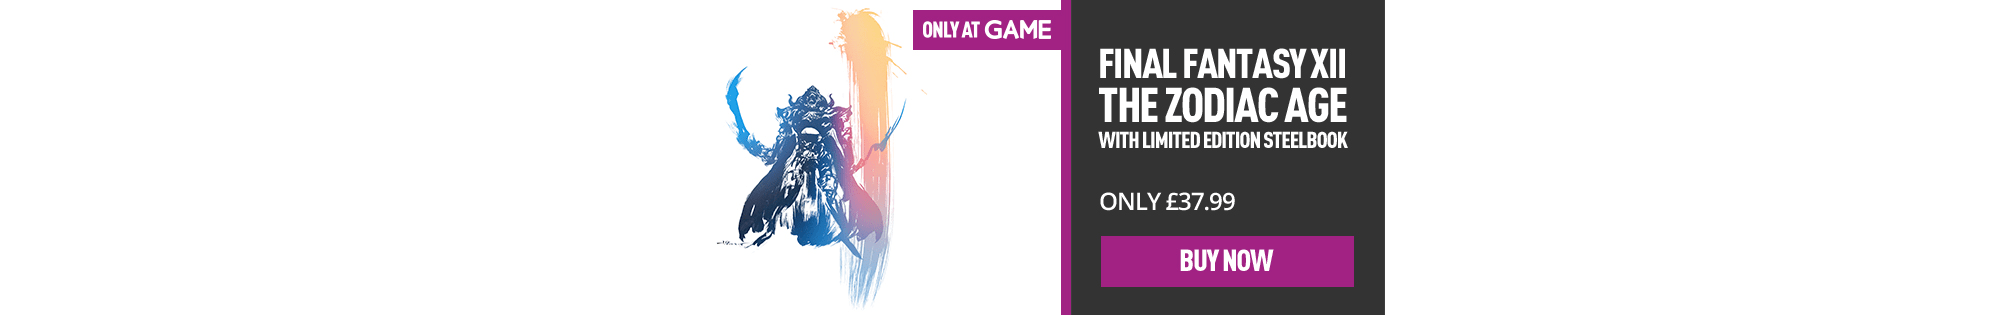 Final Fantasy XII The Zodiac Age - Buy Now at GAME.co.uk